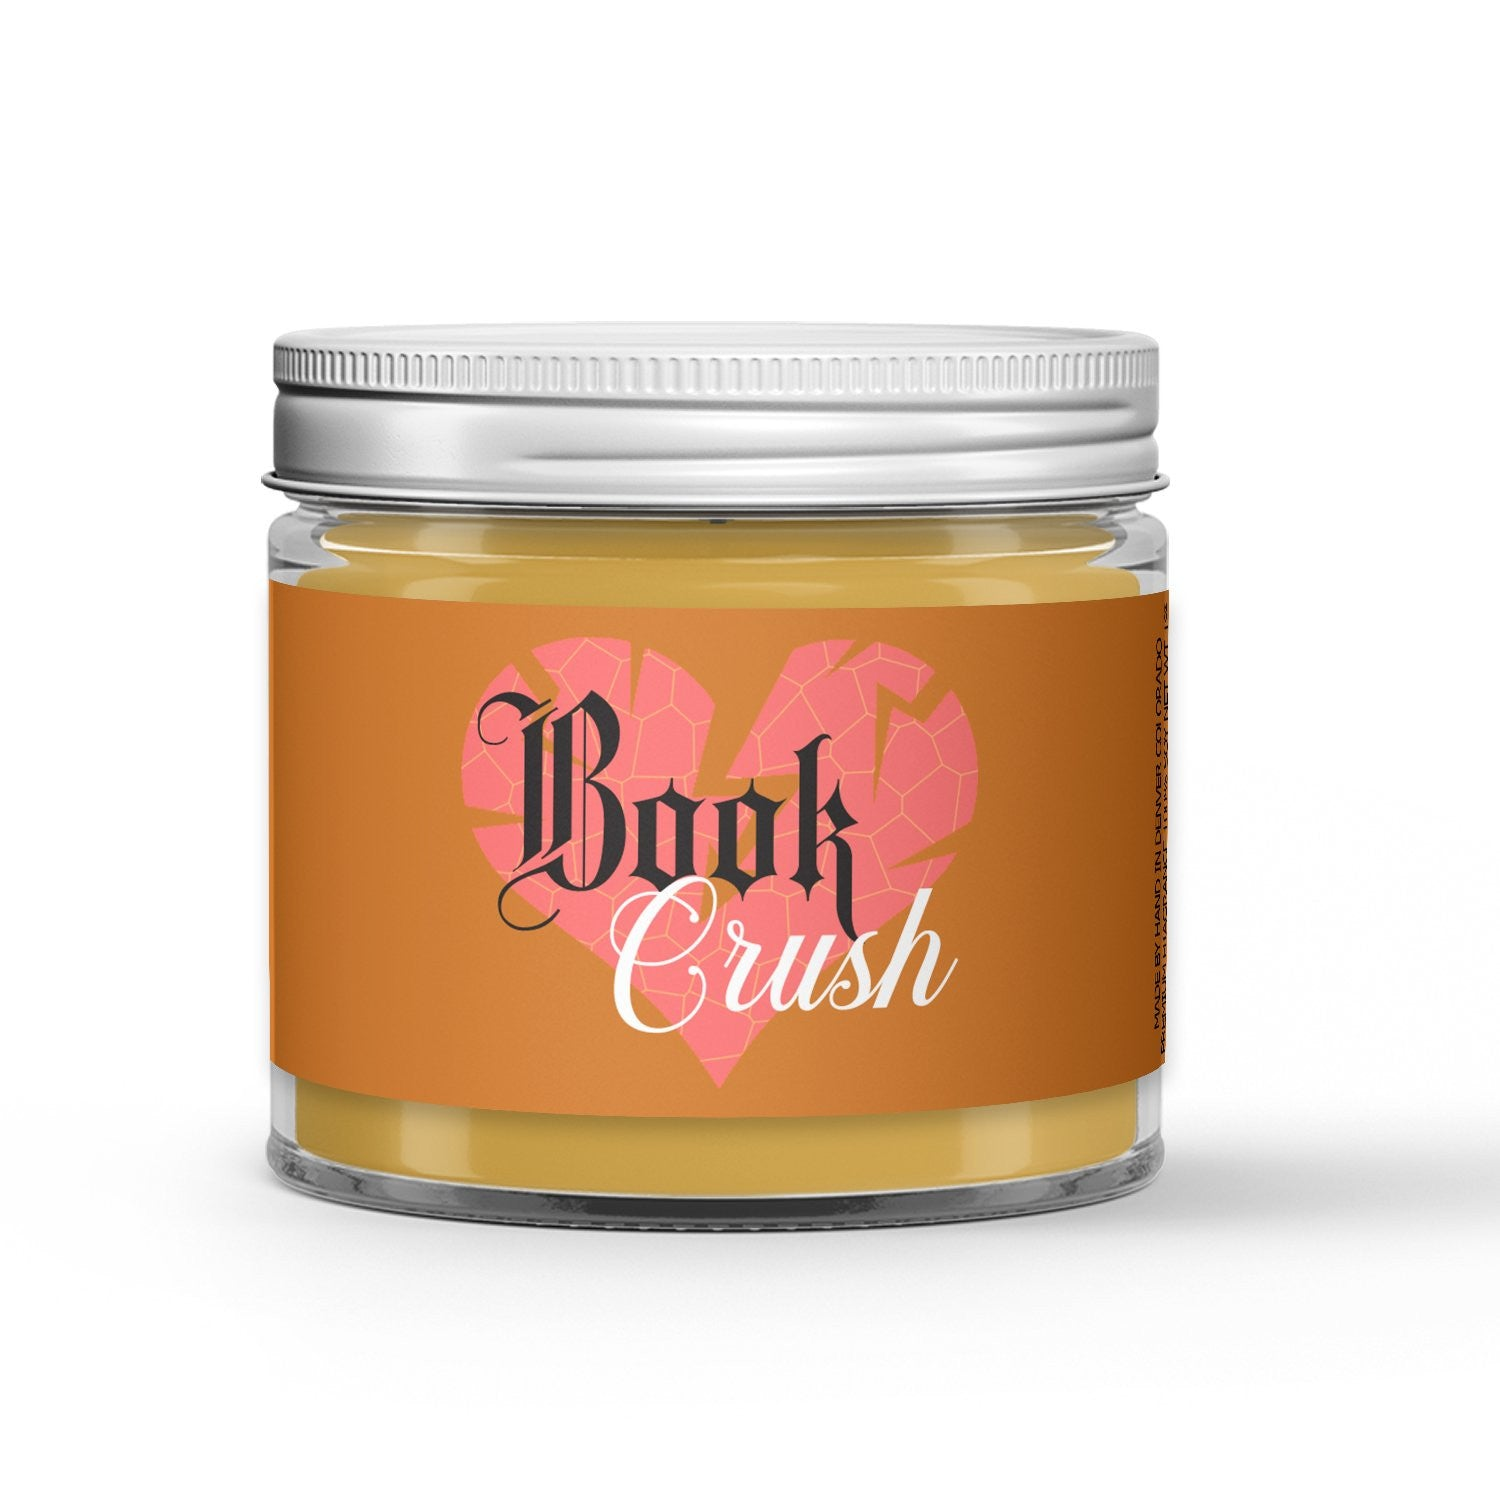 Book Crush Candle